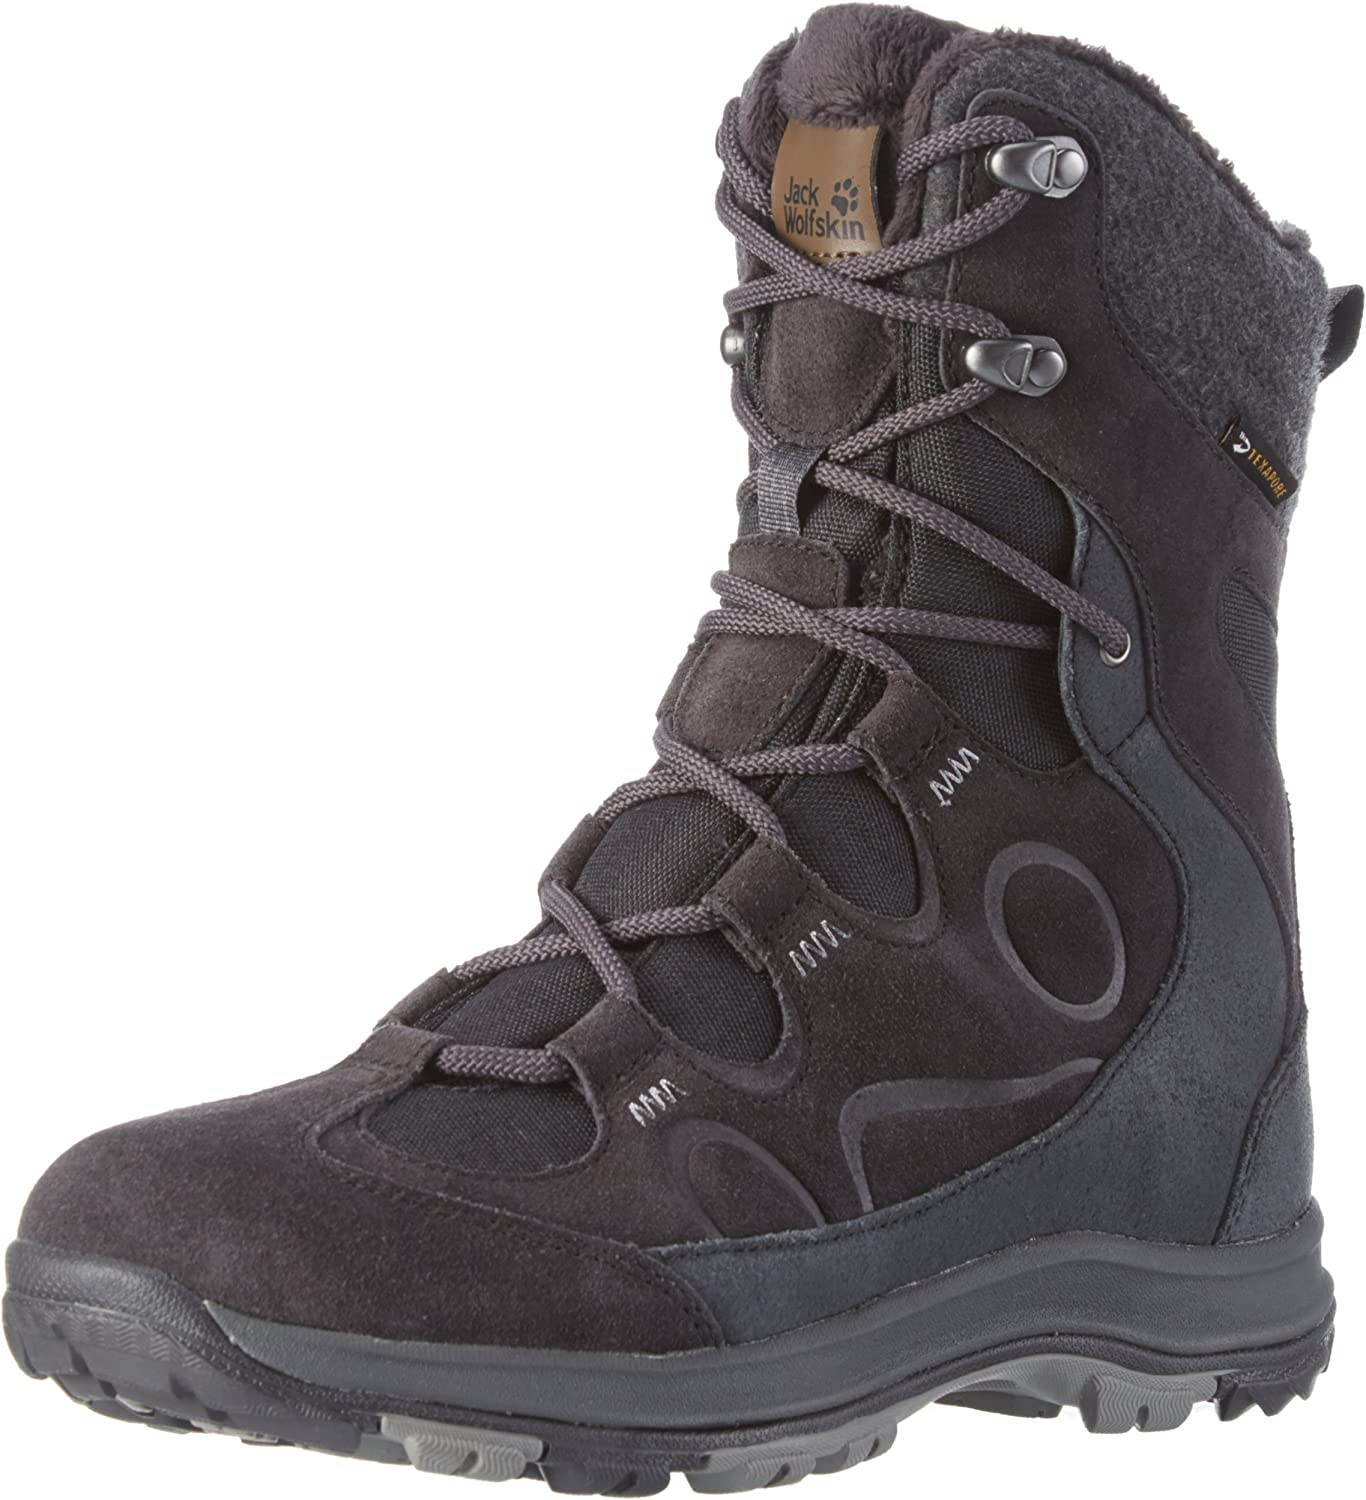 Jack Wolfskin Women s Thunder Bay Texapore HIGH W Fashion Boot, Phantom, 7 D US